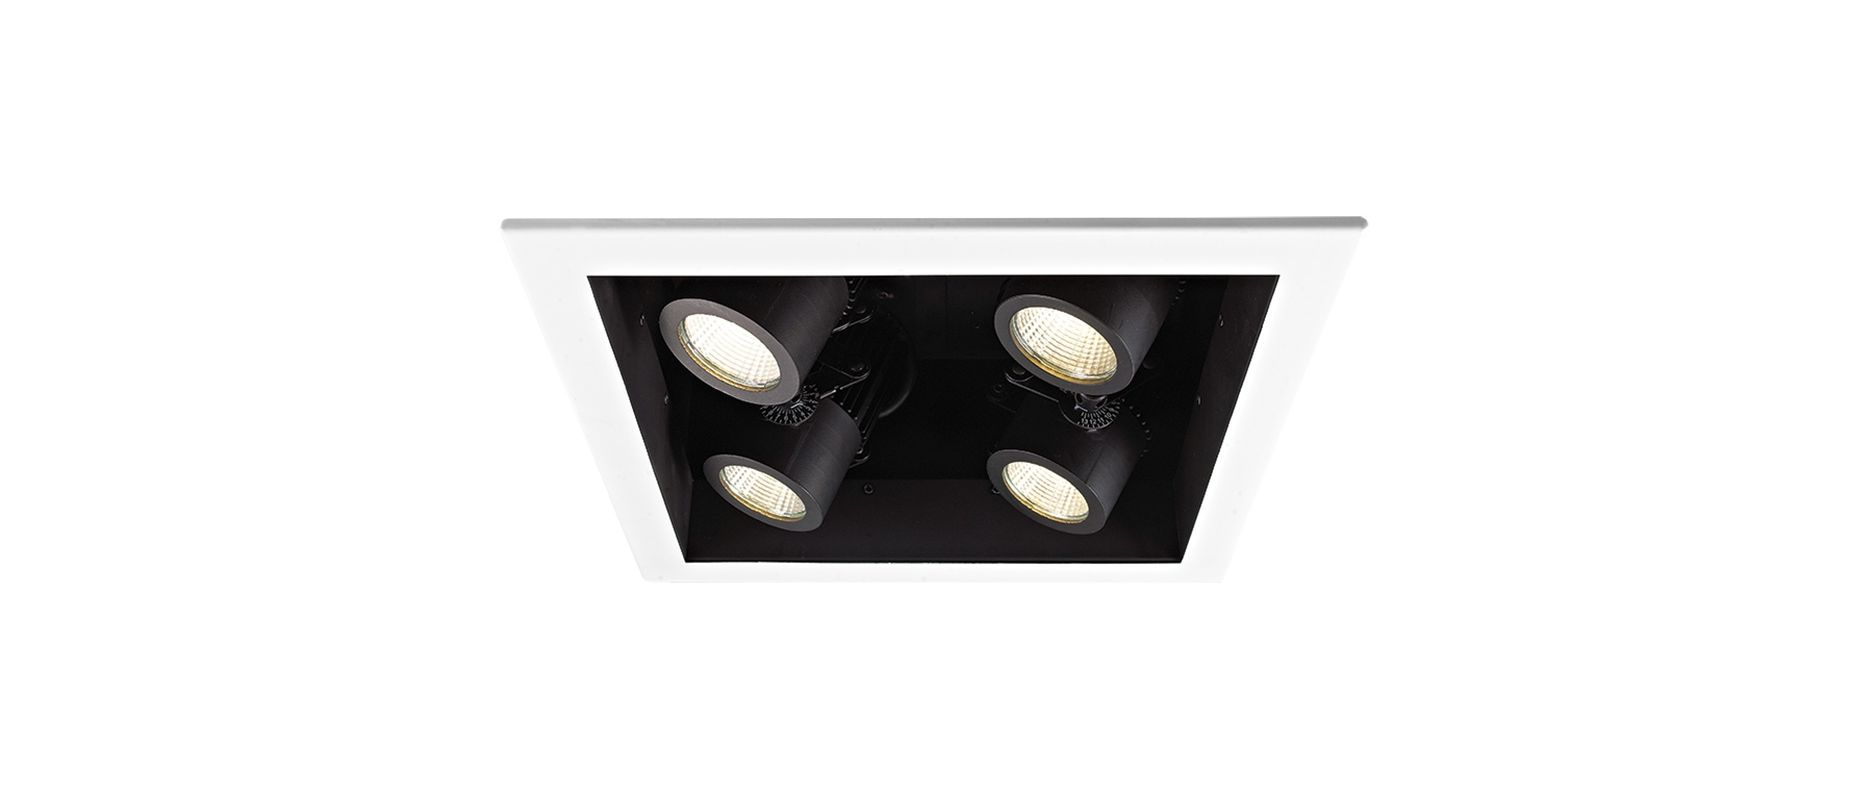 WAC Lighting MT-4LD226N-F927 4 Light Energy Star 2700K High Output LED